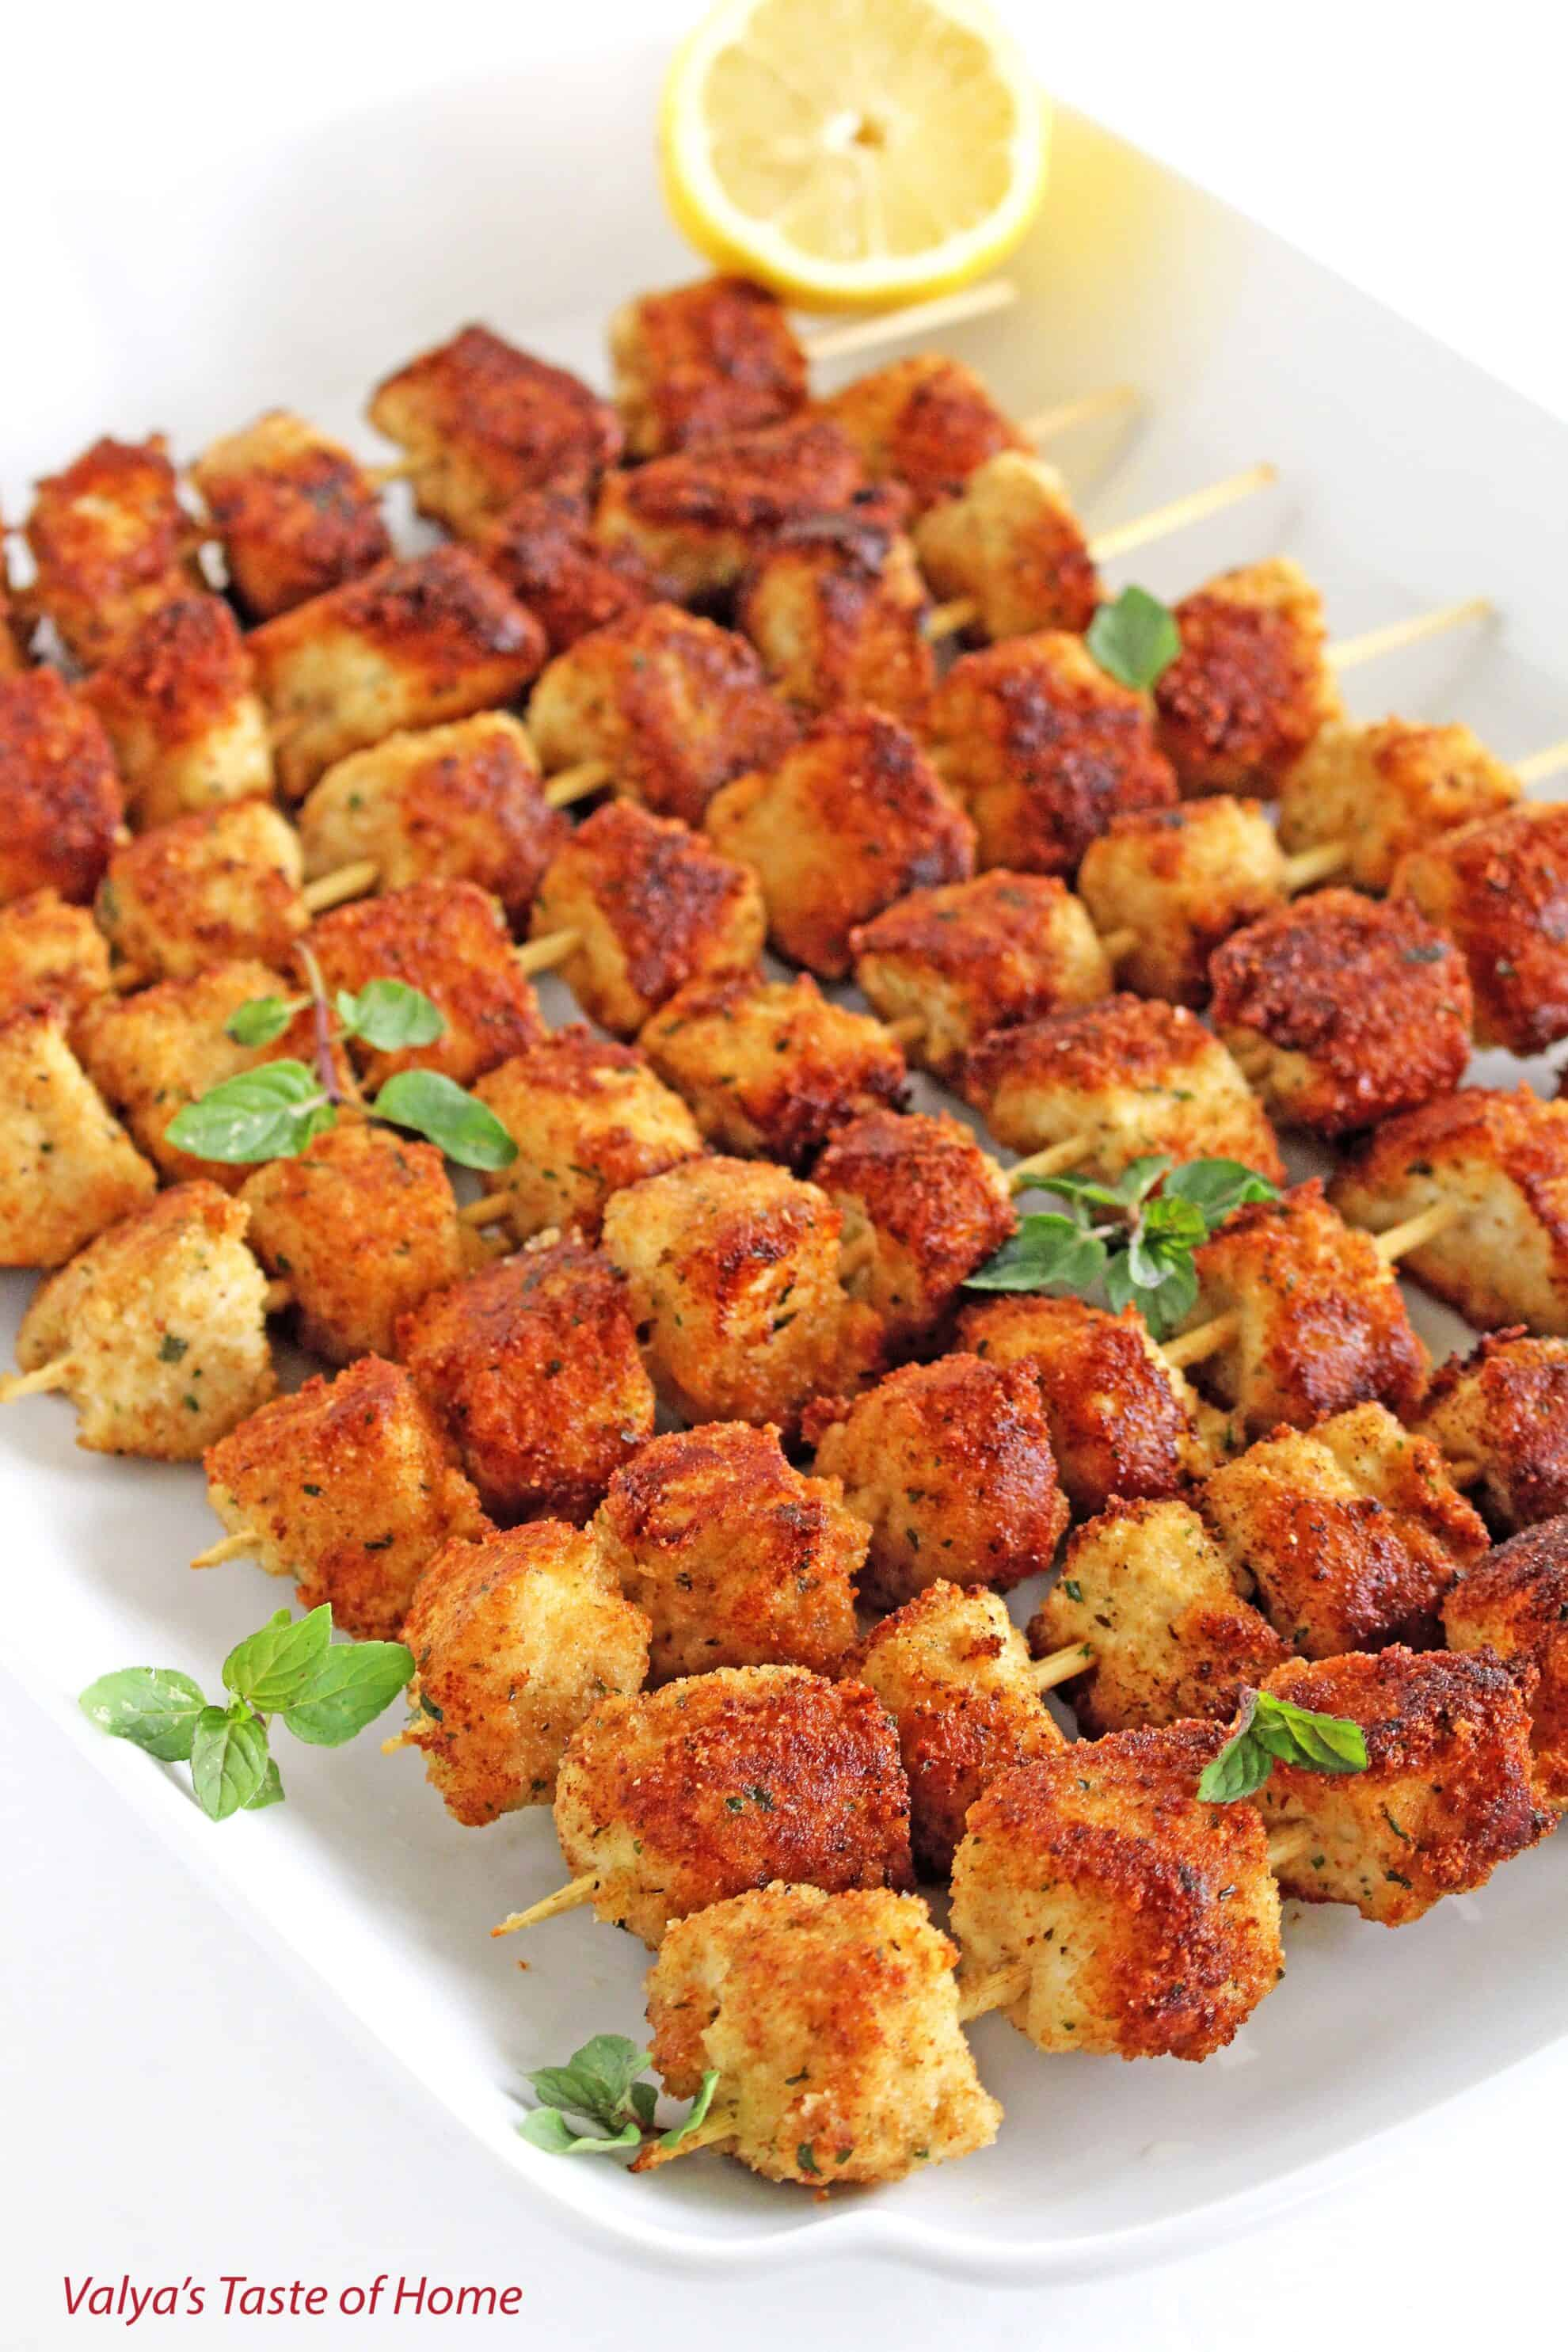 Breaded Parmesan Chicken Skewers - Valya's Taste of Home